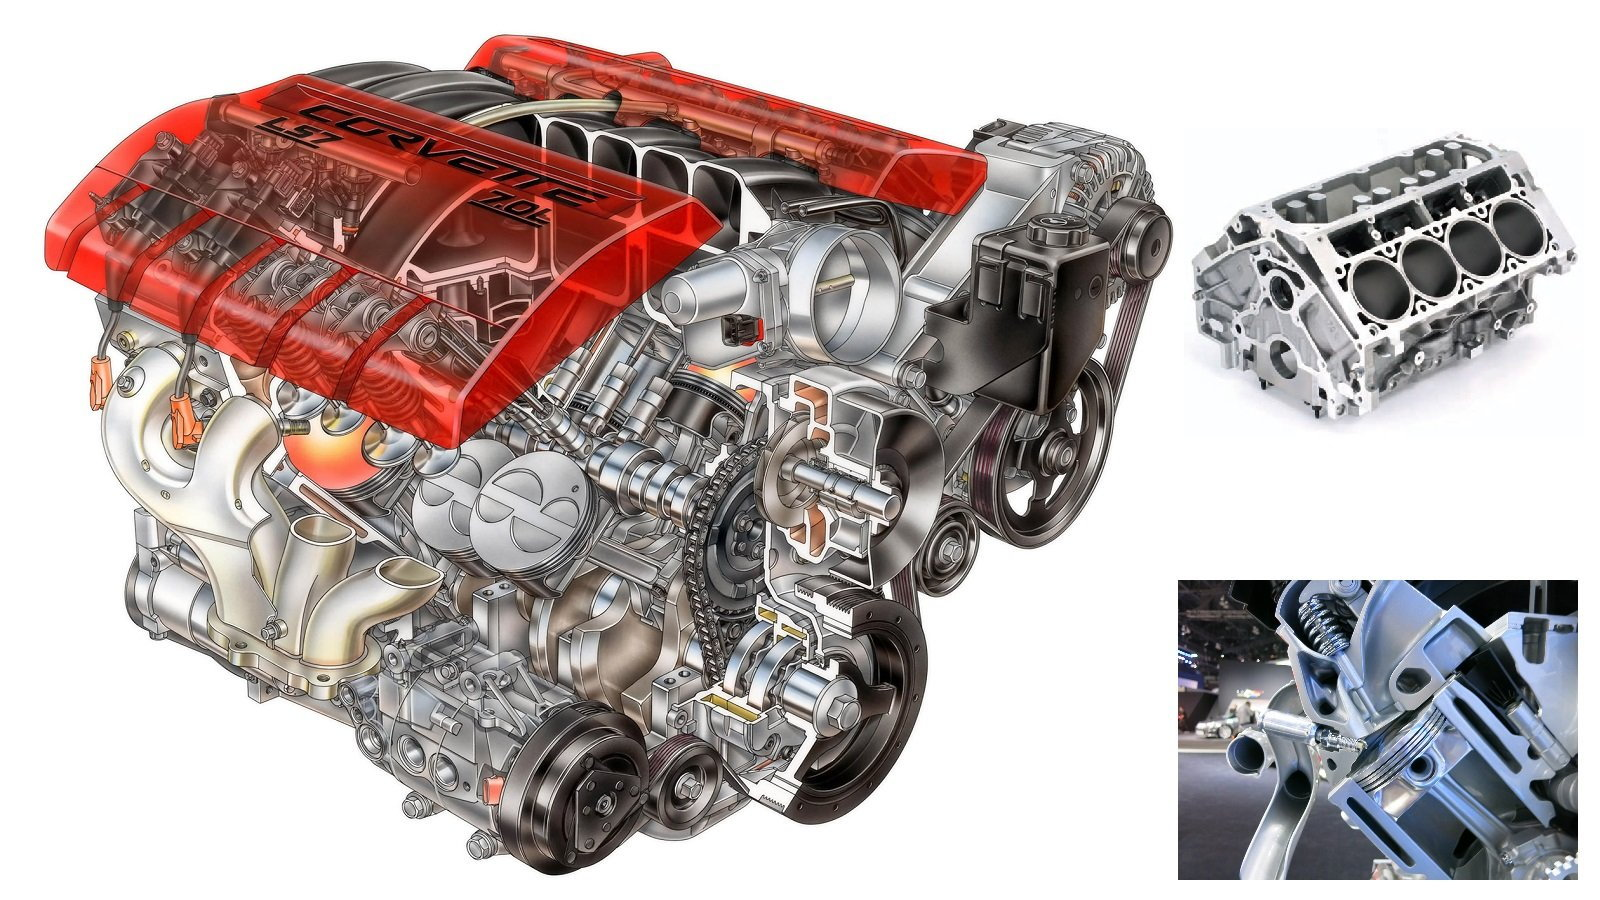 Picking a Camshaft for Your Corvette